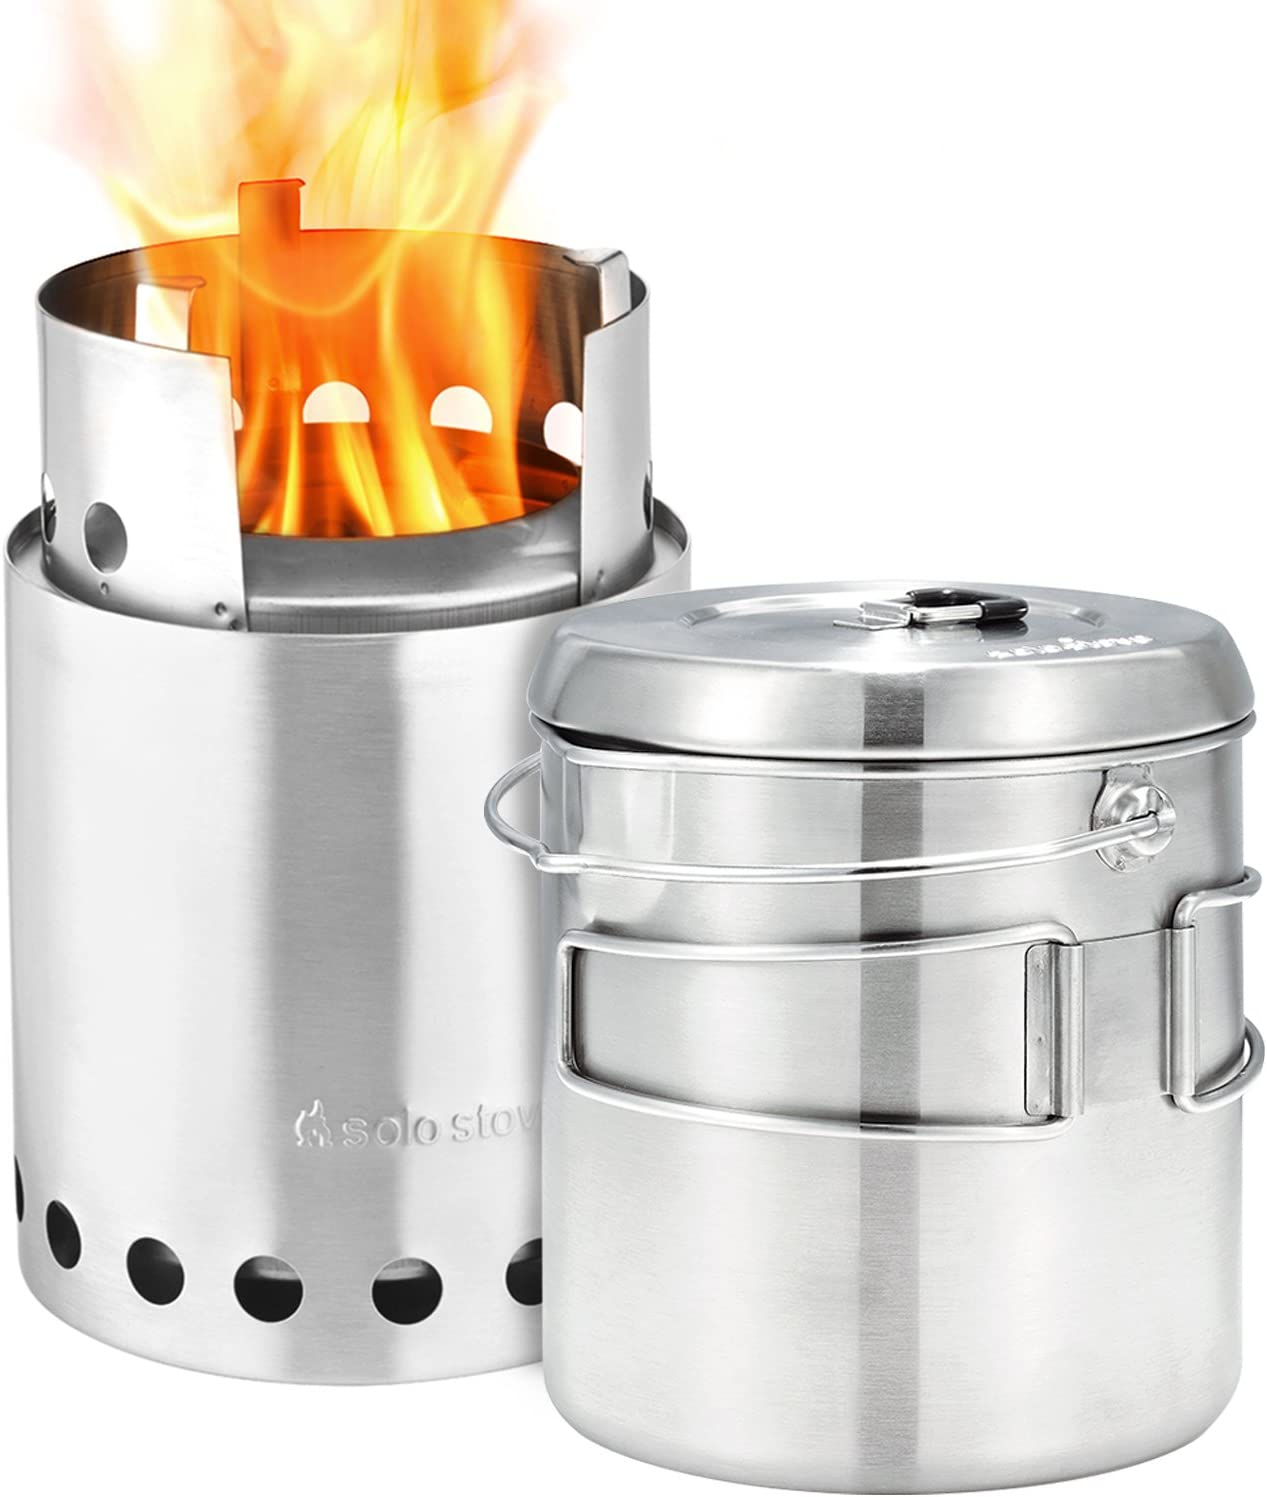 Solo Stove Titan Pot 1800 Combo Kit – Wood Burning Gassification Backpacking Stove Combo Camping Survival Efficient Stove